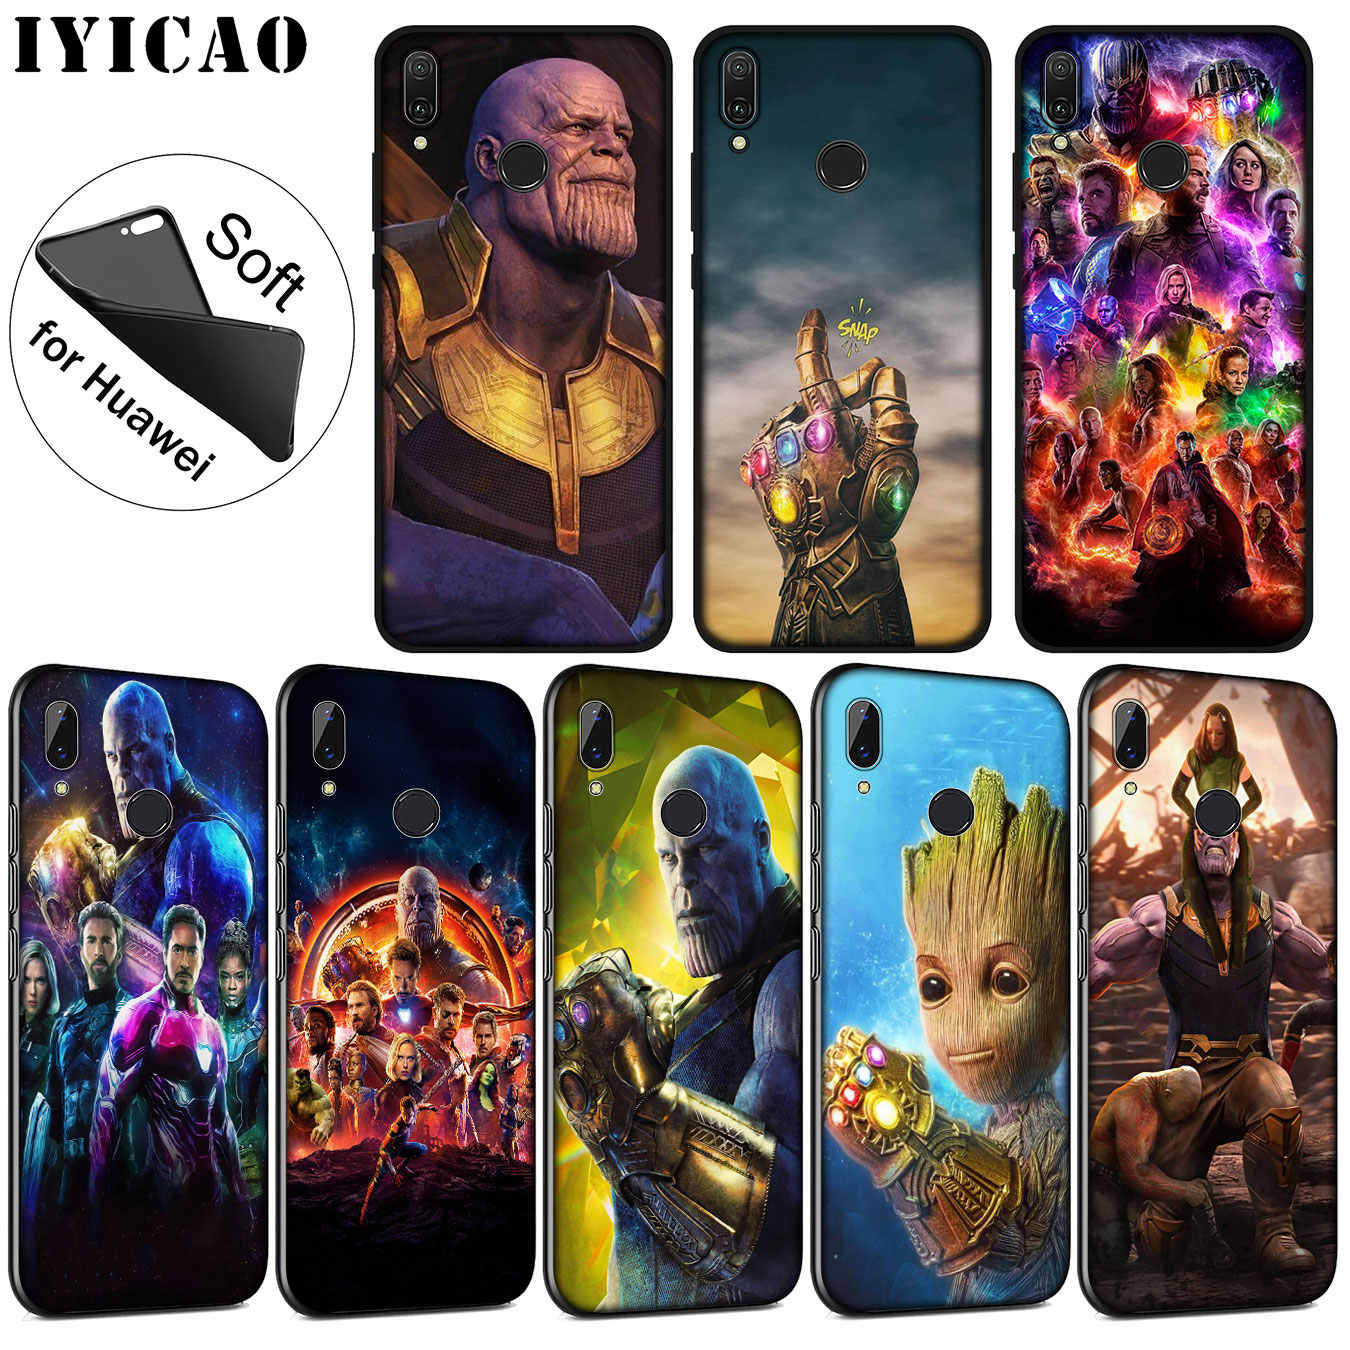 IYICAO Thanos vs avengers Endgame Marvel Soft Silicone Case for Huawei P30 P20 Pro P10 P9 P8 Lite Mini 2017 2016 P smart Z 2019